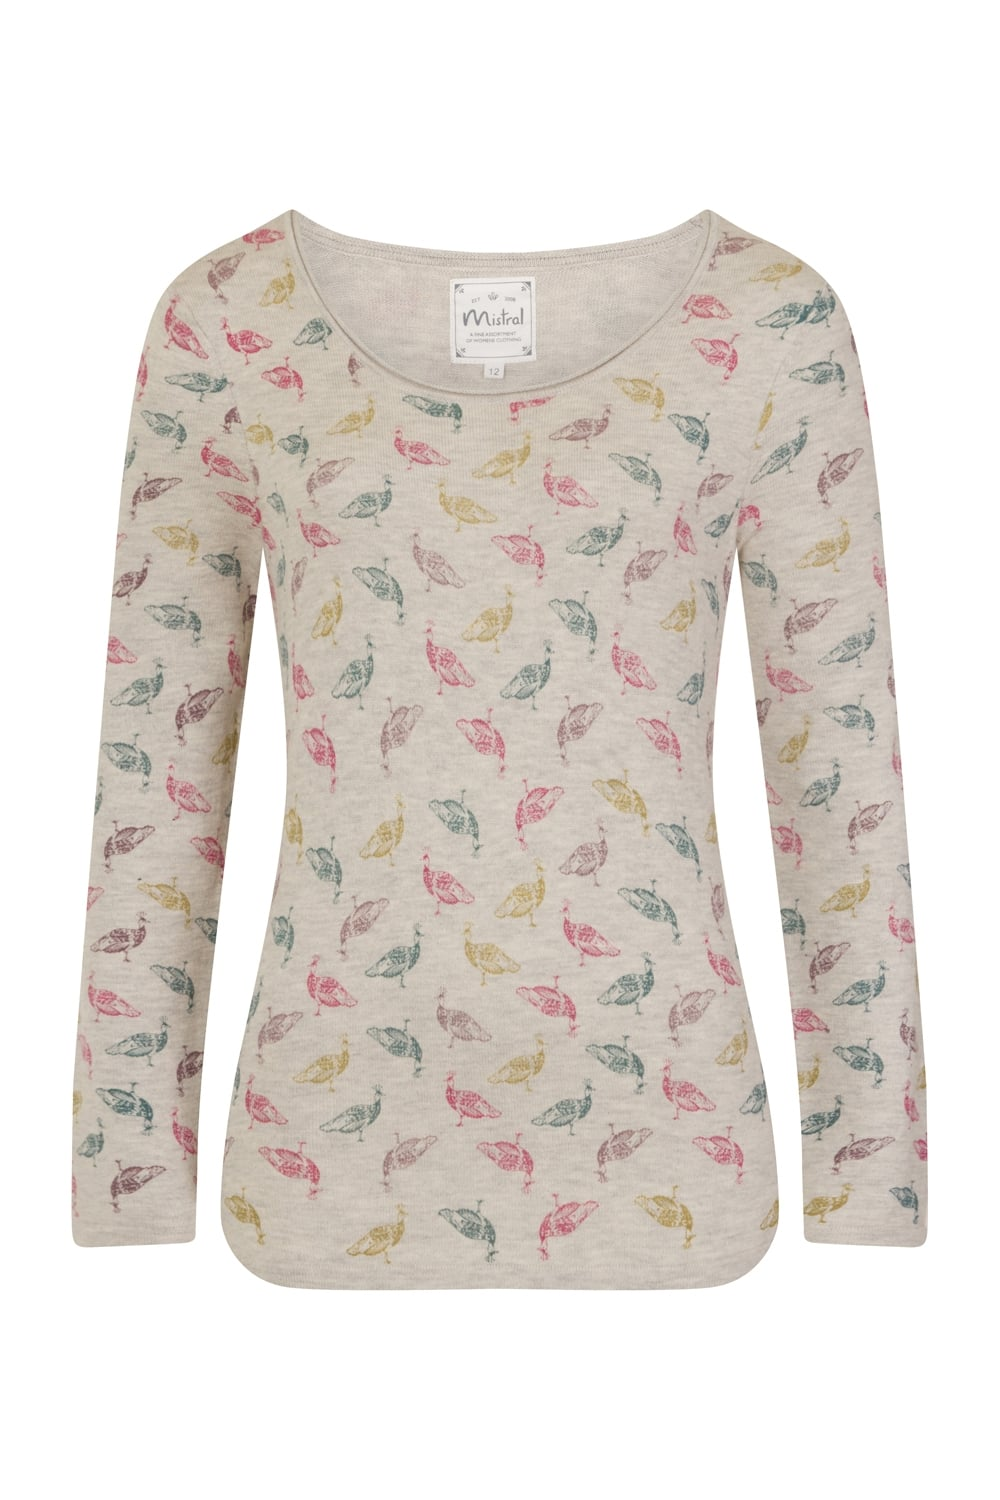 pretty peahen jumper, fine knit jumper with multicoloured peahen print, beautiful autumnal jumper